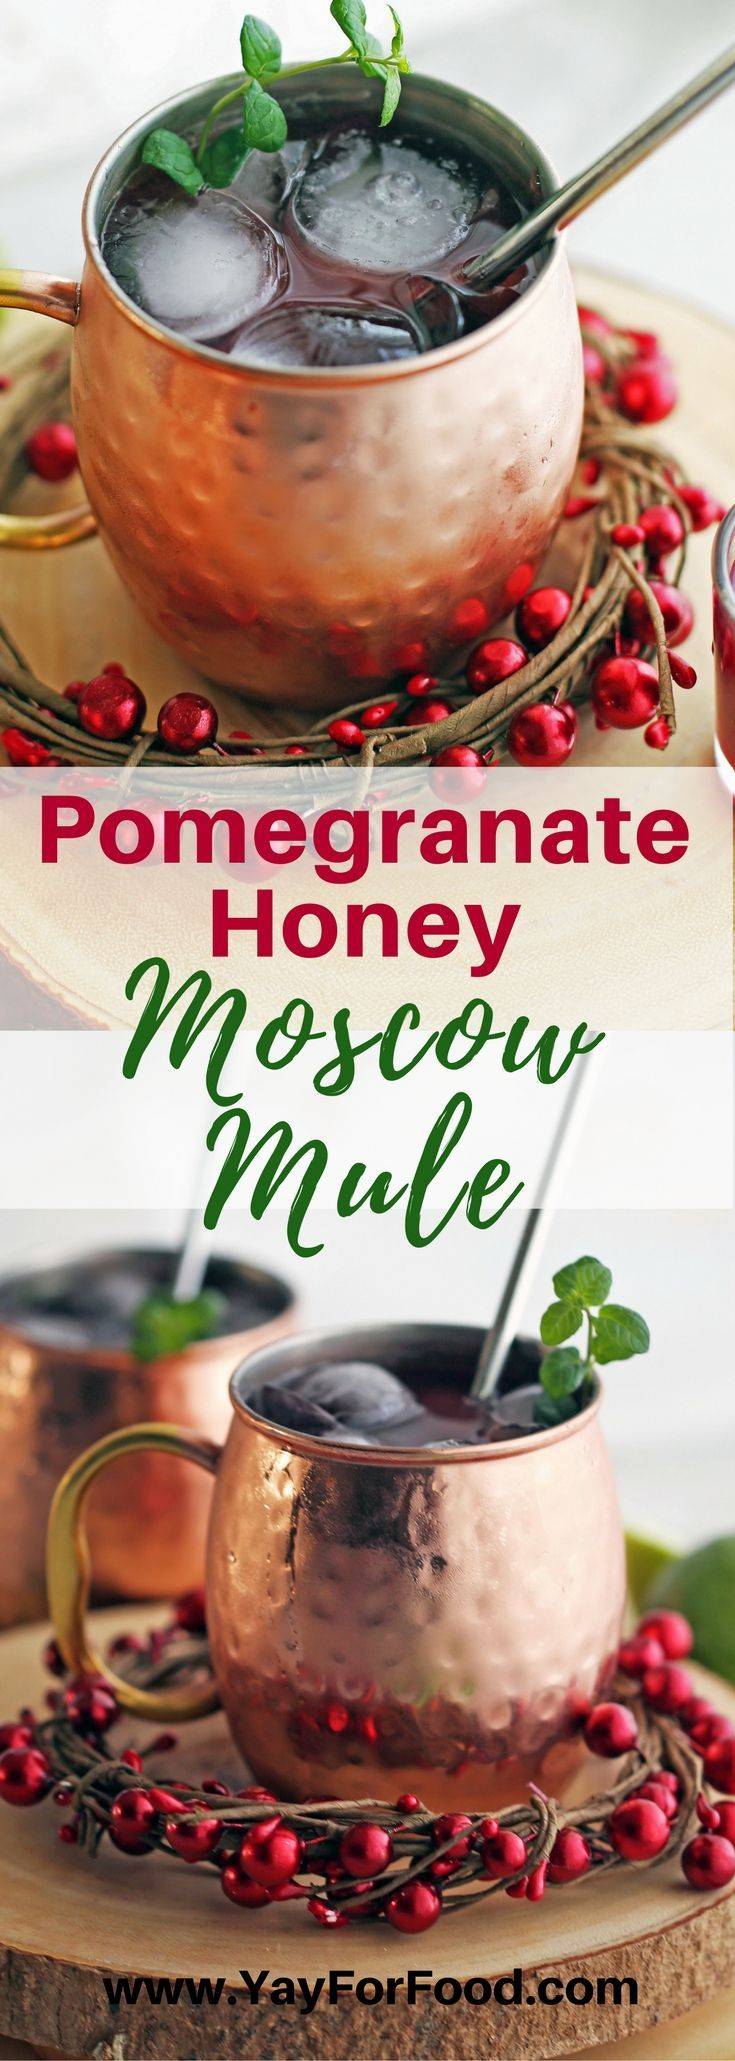 Pomegranate Honey Moscow Mules are a lovely seasonal twist on the classic Moscow Mule. It's a festive and refreshing drink that's perfect to sip on during the holidays! #drinks | #beverages | #alcoholicdrinks | #moscowmule | #holidayrecipes | #partyfood | #partydrinks | #cocktails | #easyrecipes | #pomegranate